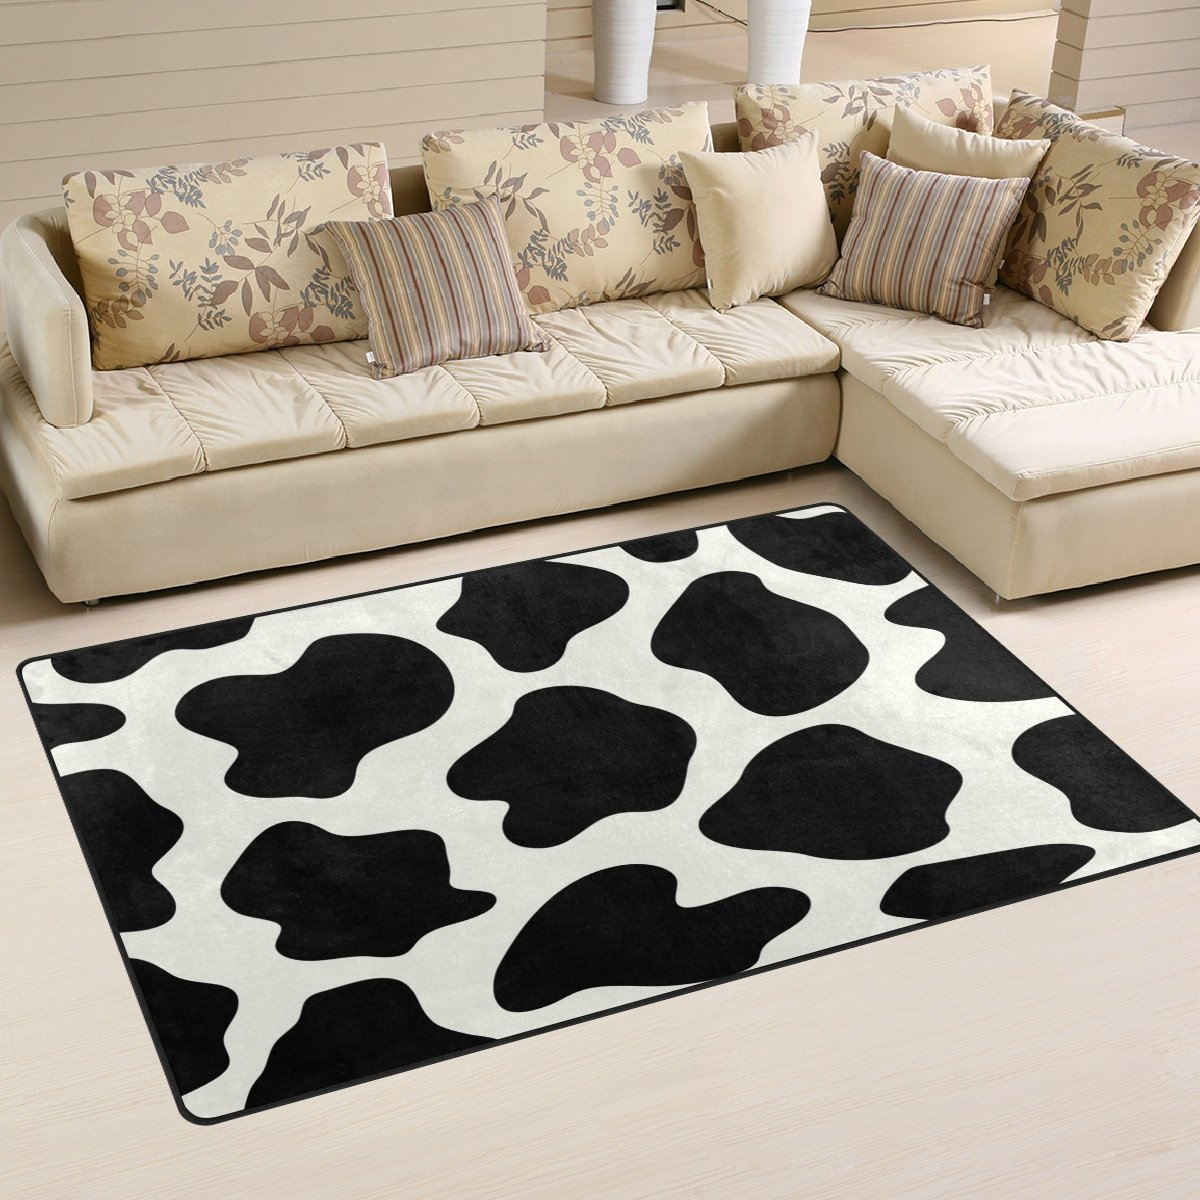 WOZO Animal Cow Print Area Rug Rugs Non-Slip Floor Mat Doormats Living Room Bedroom 31 x 20 inches by WOZO (Image #1)